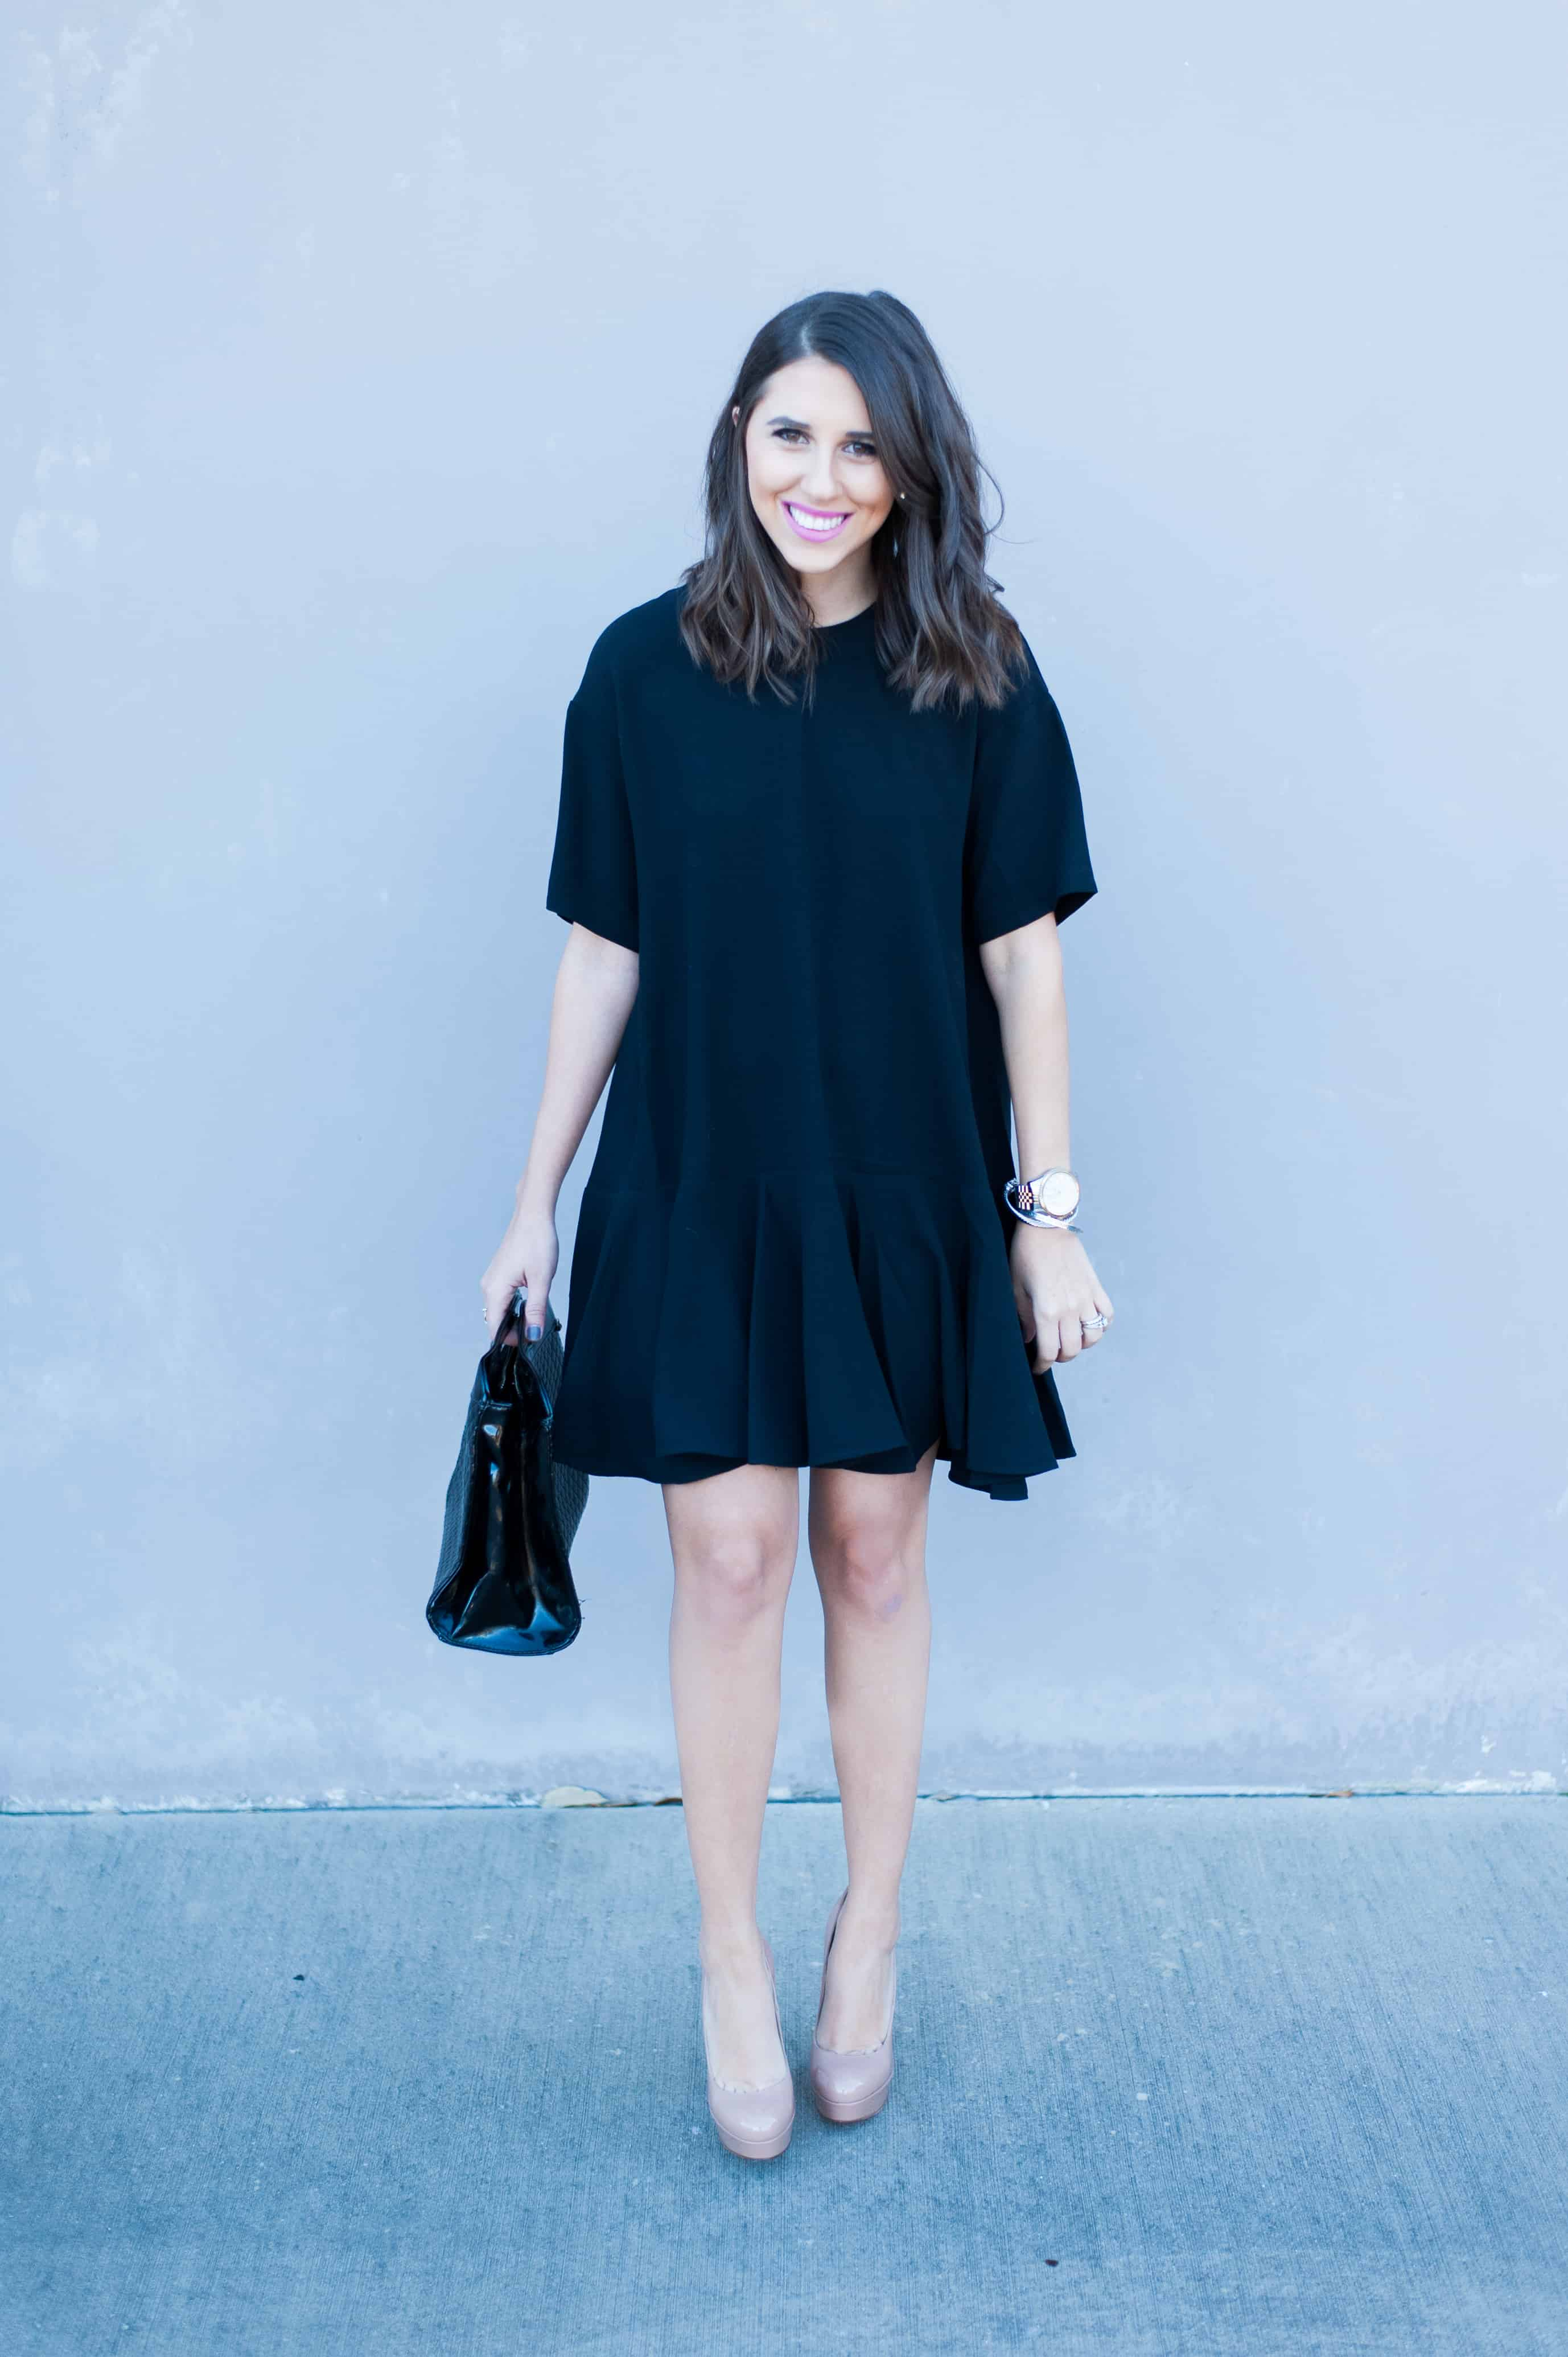 Dress Up Buttercup | Houston Fashion Blog - Dede Raad | French Connection Drop Waist Knit Dress